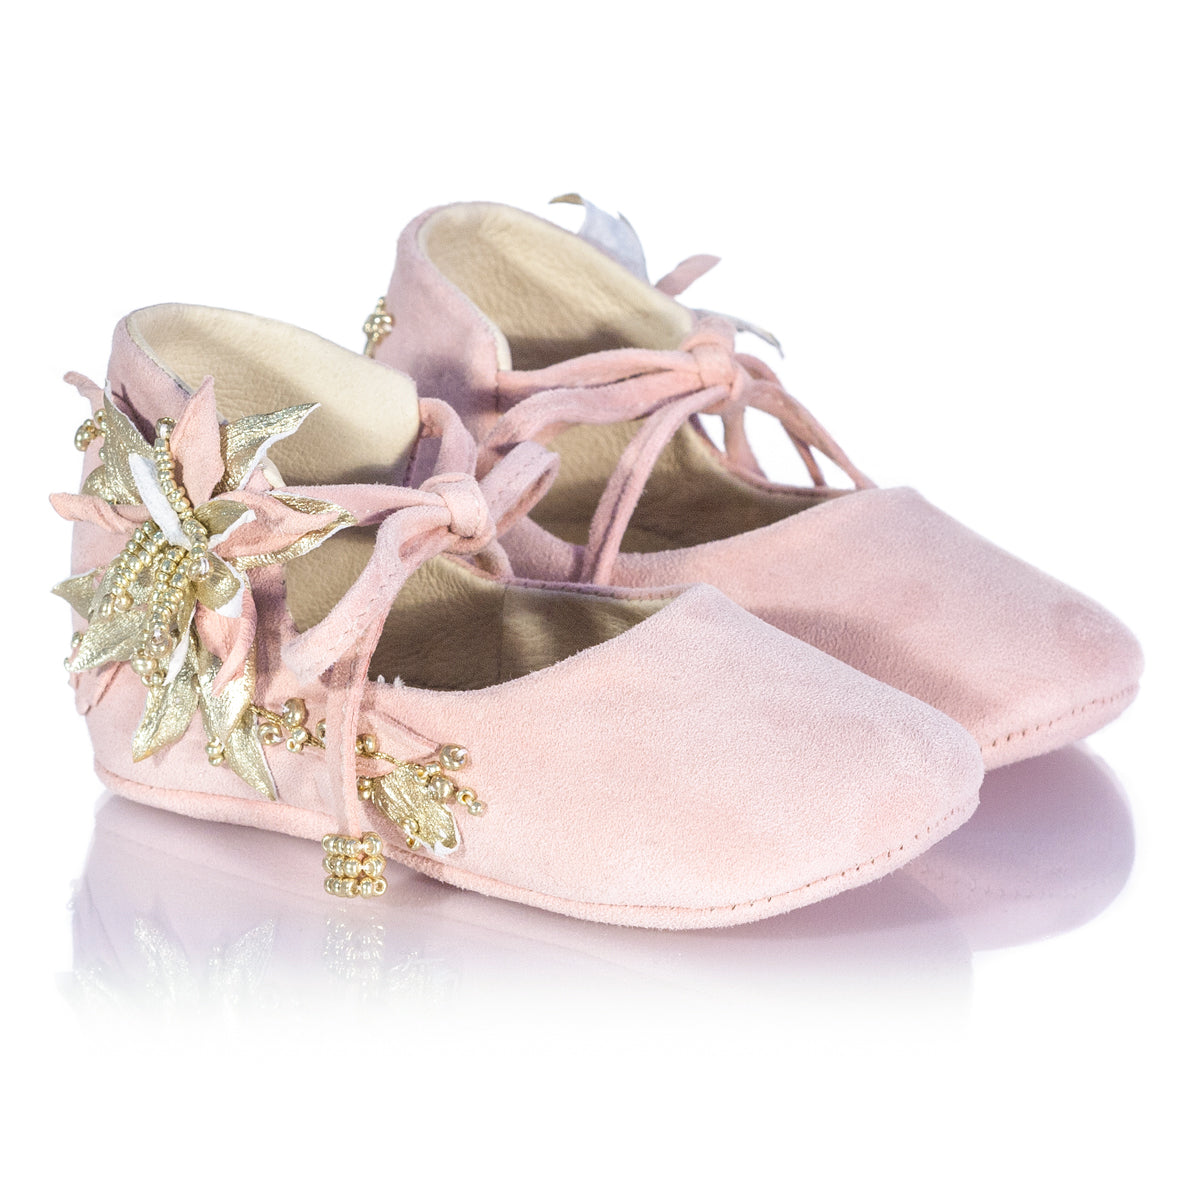 Vibys-Baby-Shoes-Water-Lily-Pink-pair-view